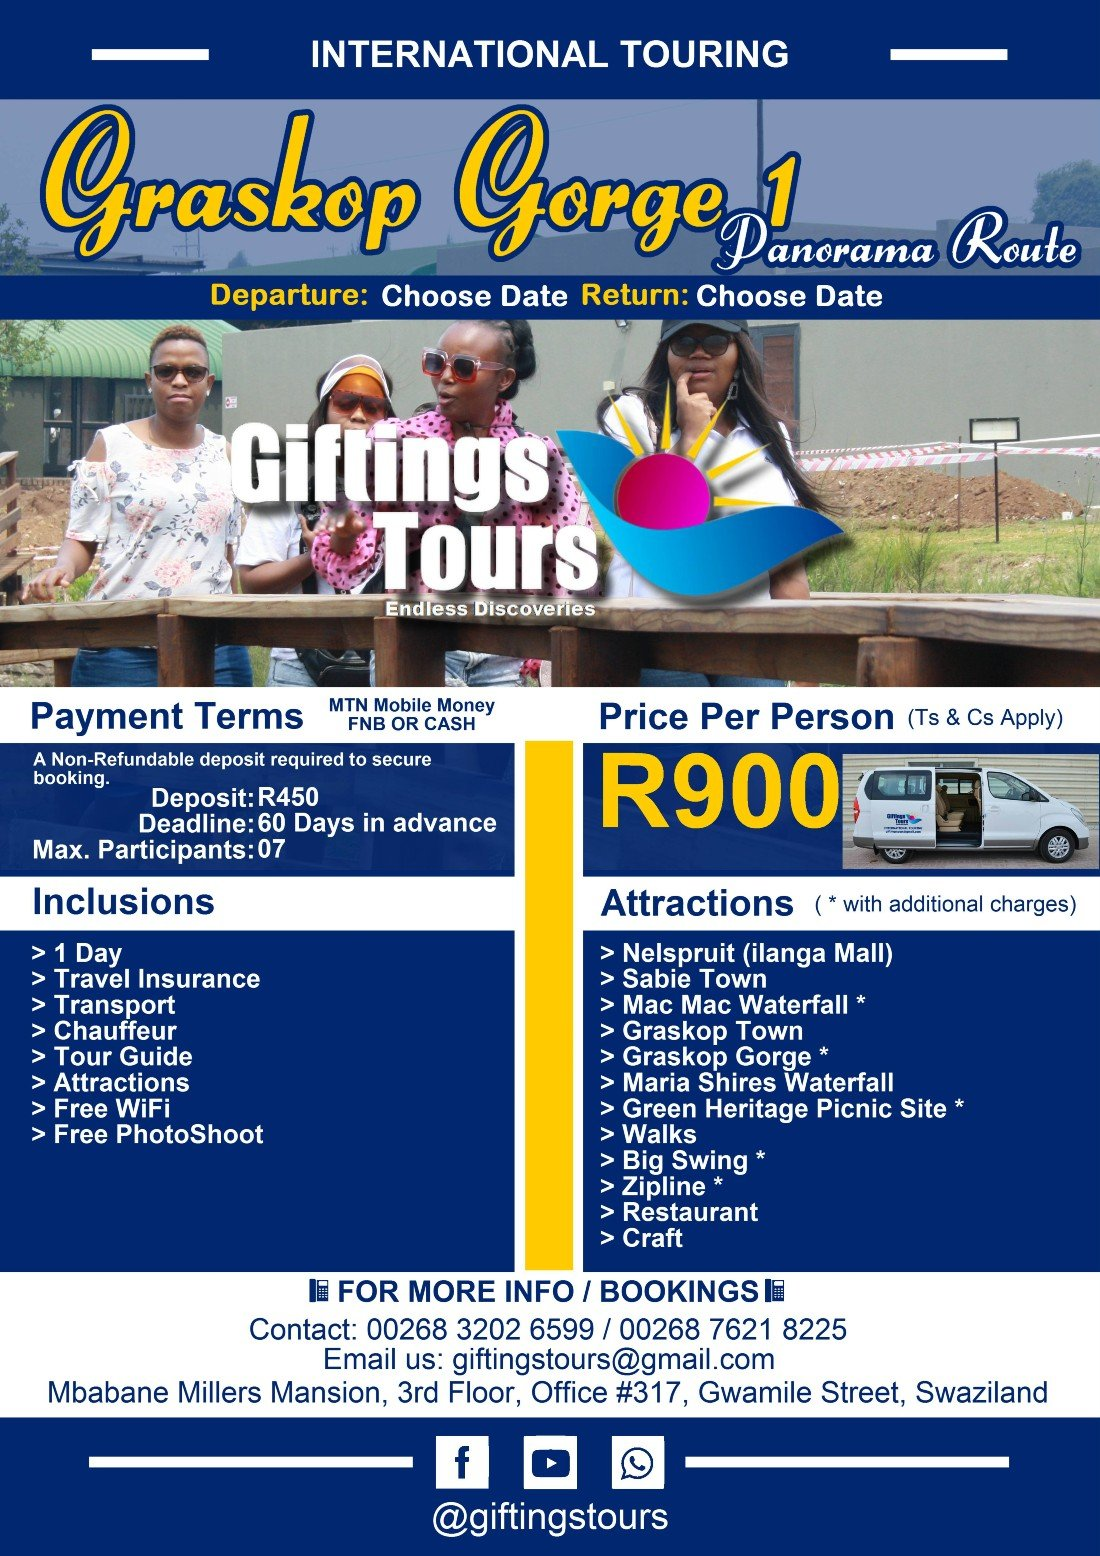 Graskop Gorge Mpumalanga, 1 October | Event in White River | AllEvents.in